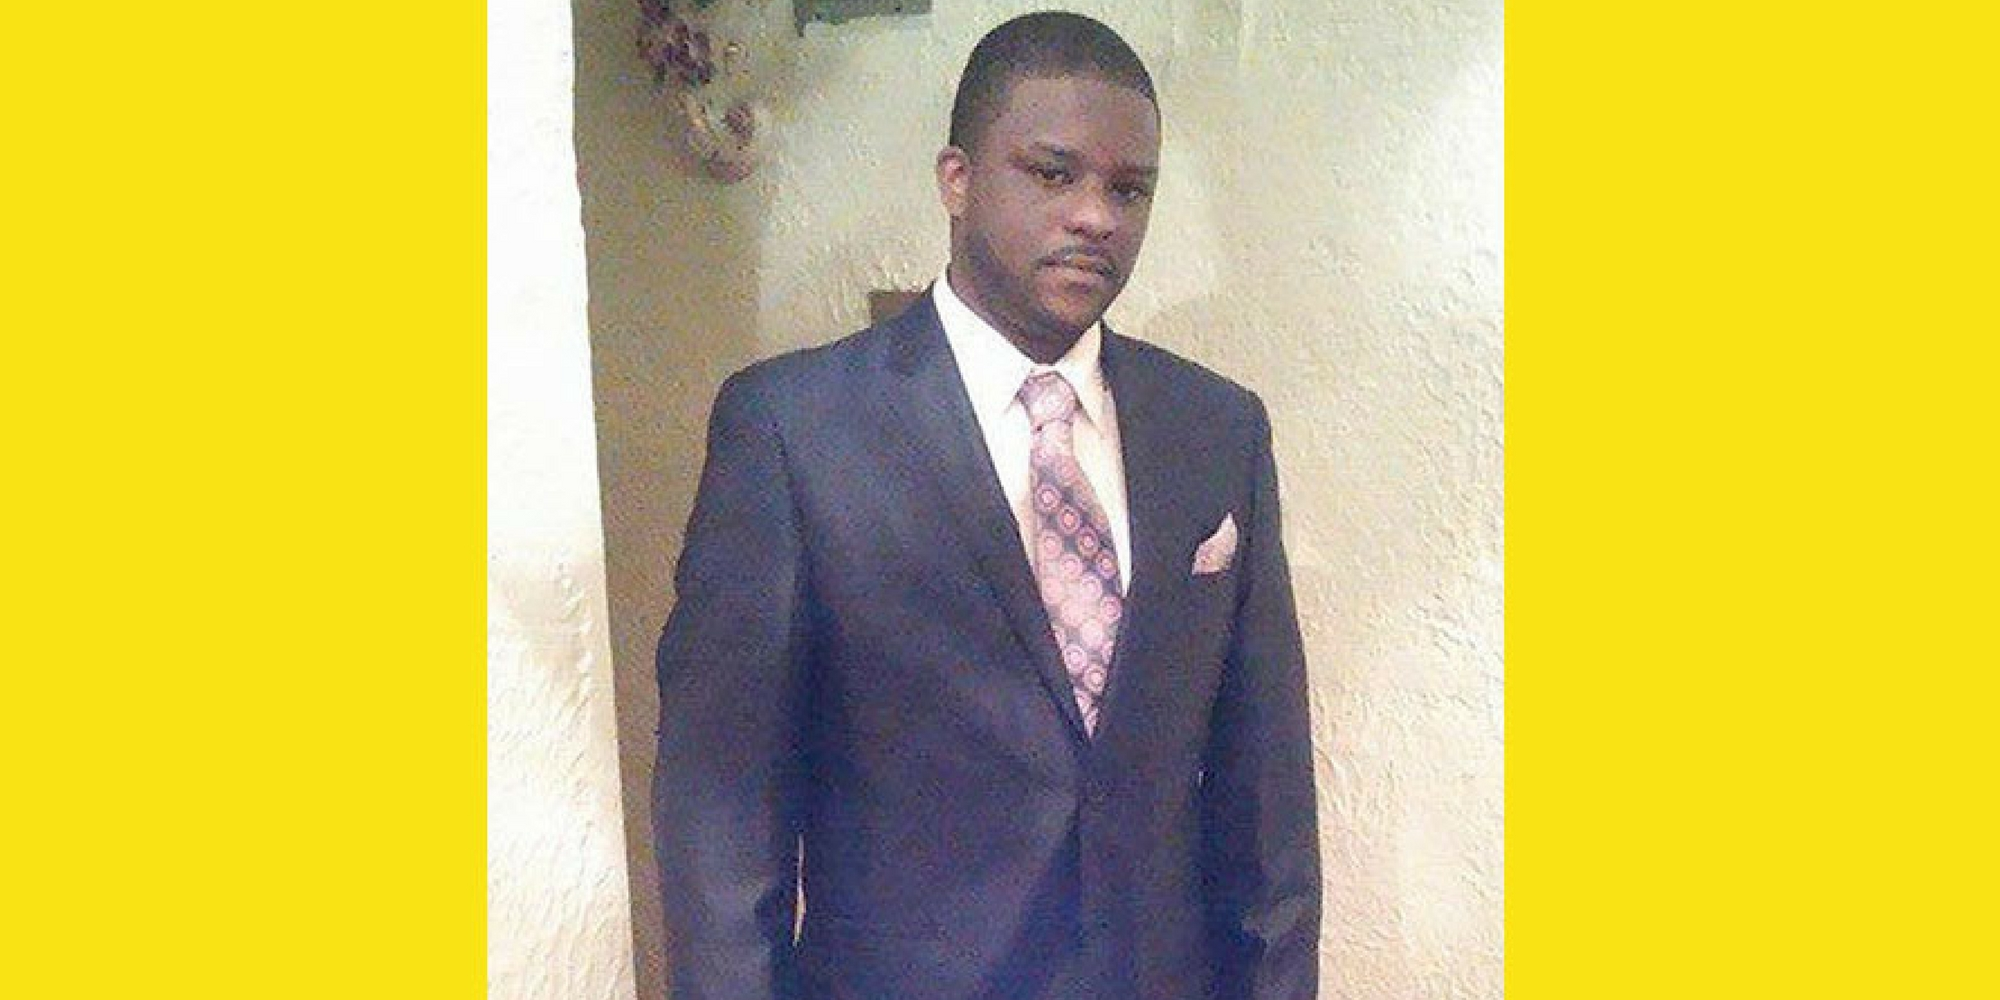 Brooklyn Father SHOT DEAD Trying To Protect His 17-Year-Old SON From Local BULLIES